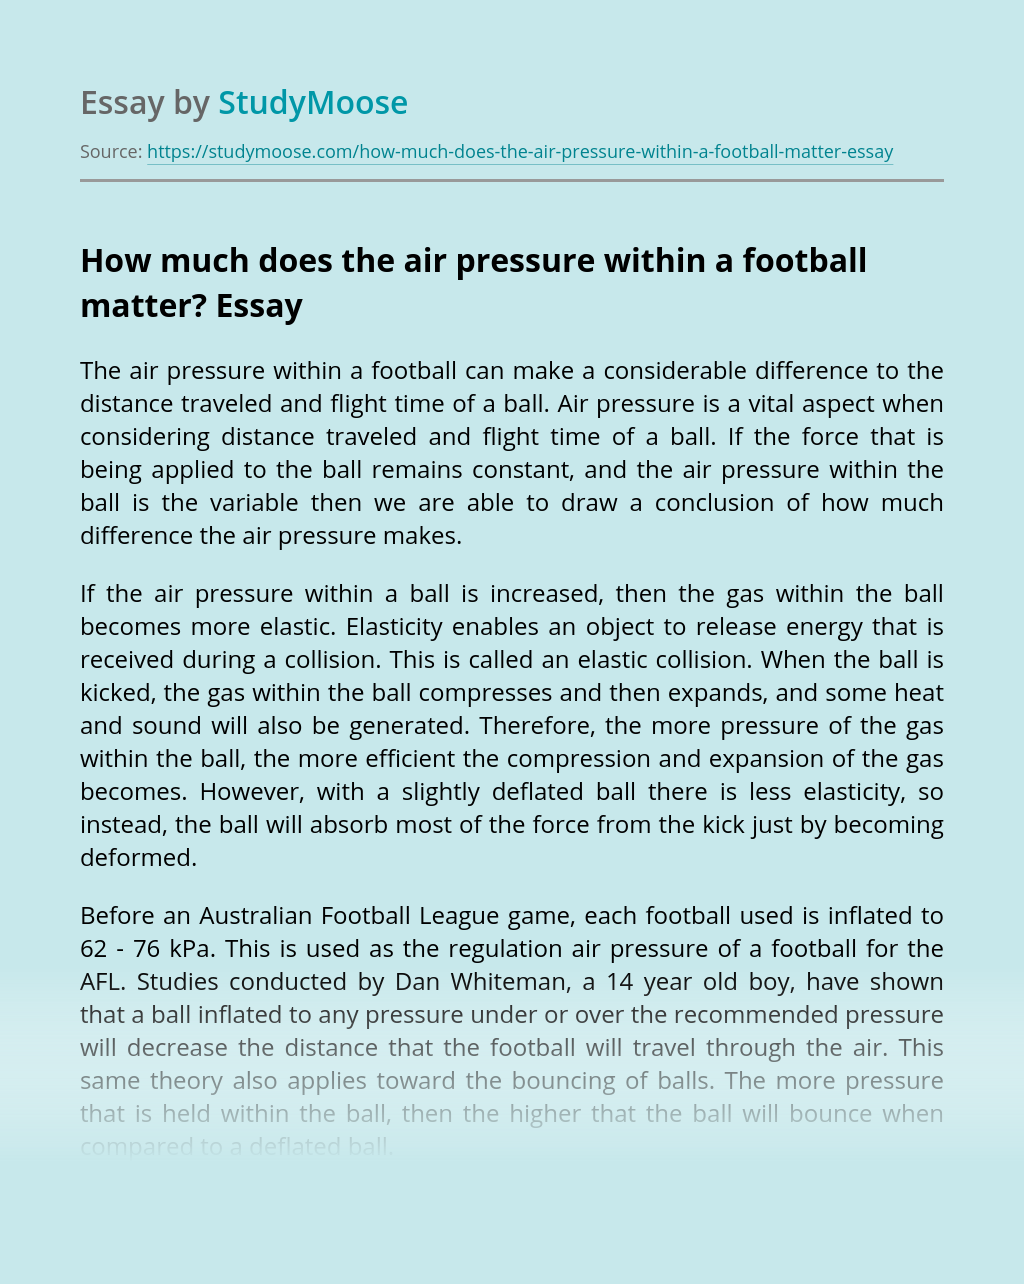 How much does the air pressure within a football matter?